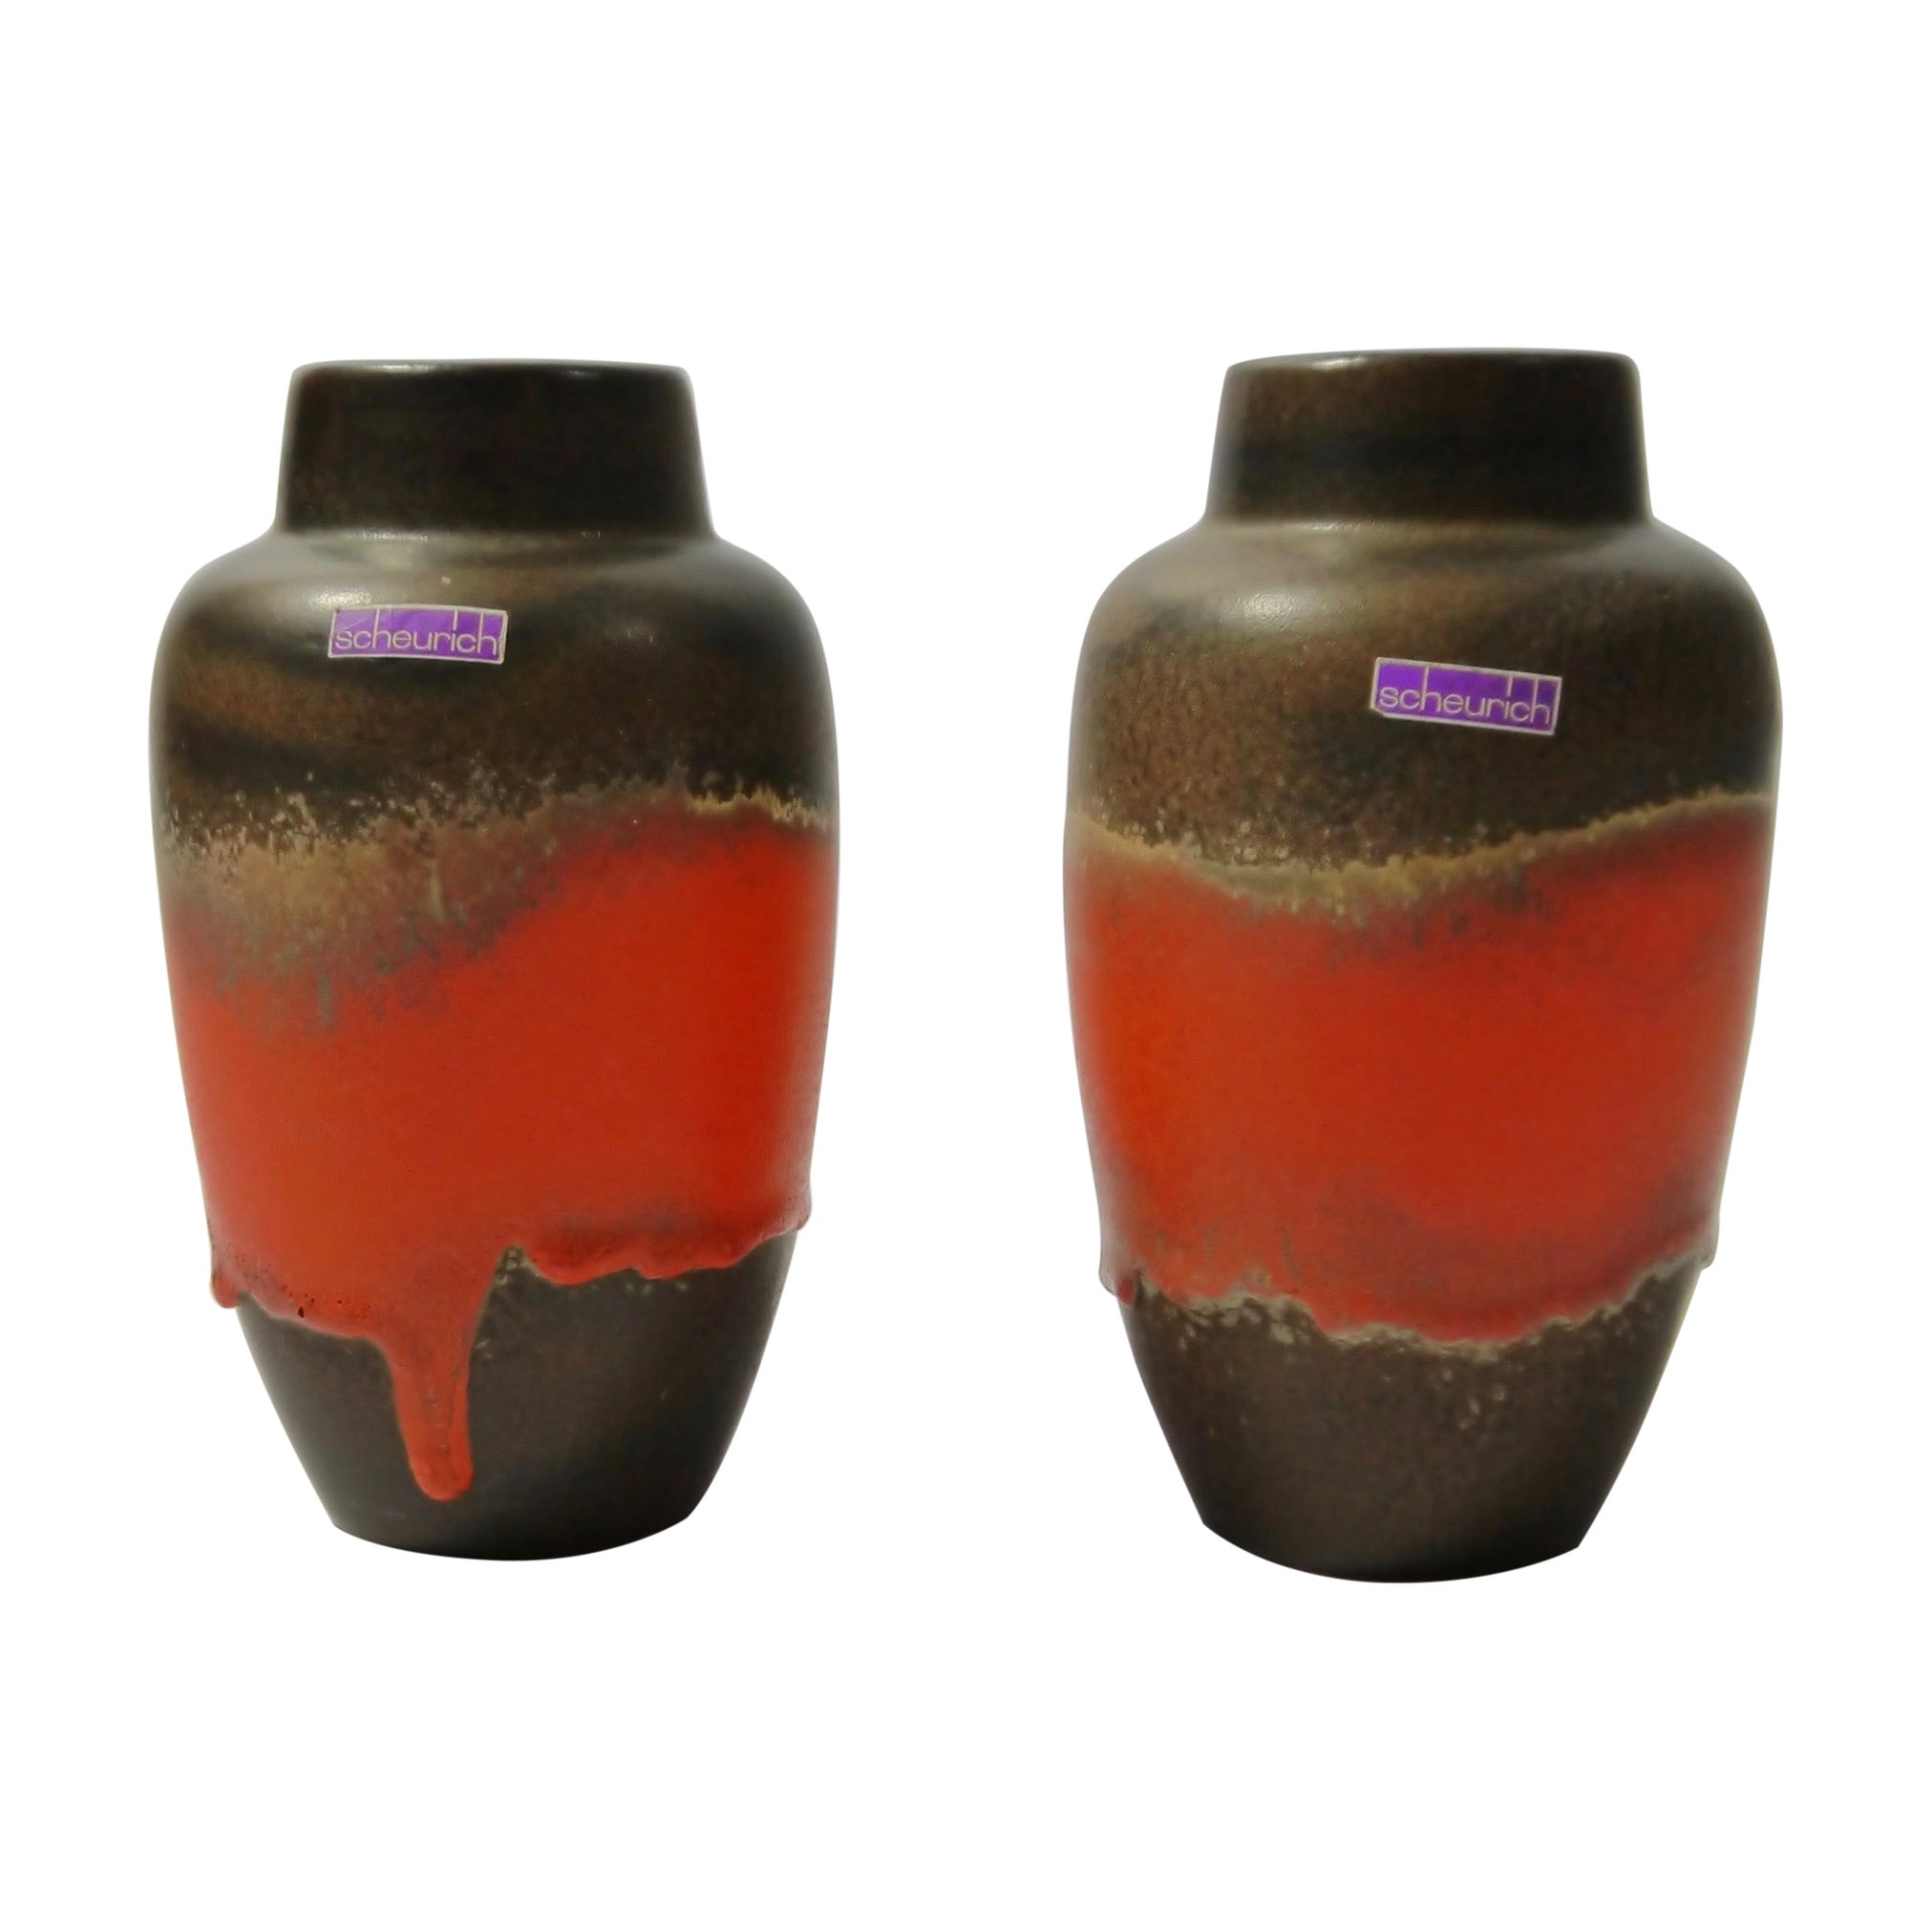 Pair of Fat Lava Ceramic Vases by Scheurich, West Germany, 1960s